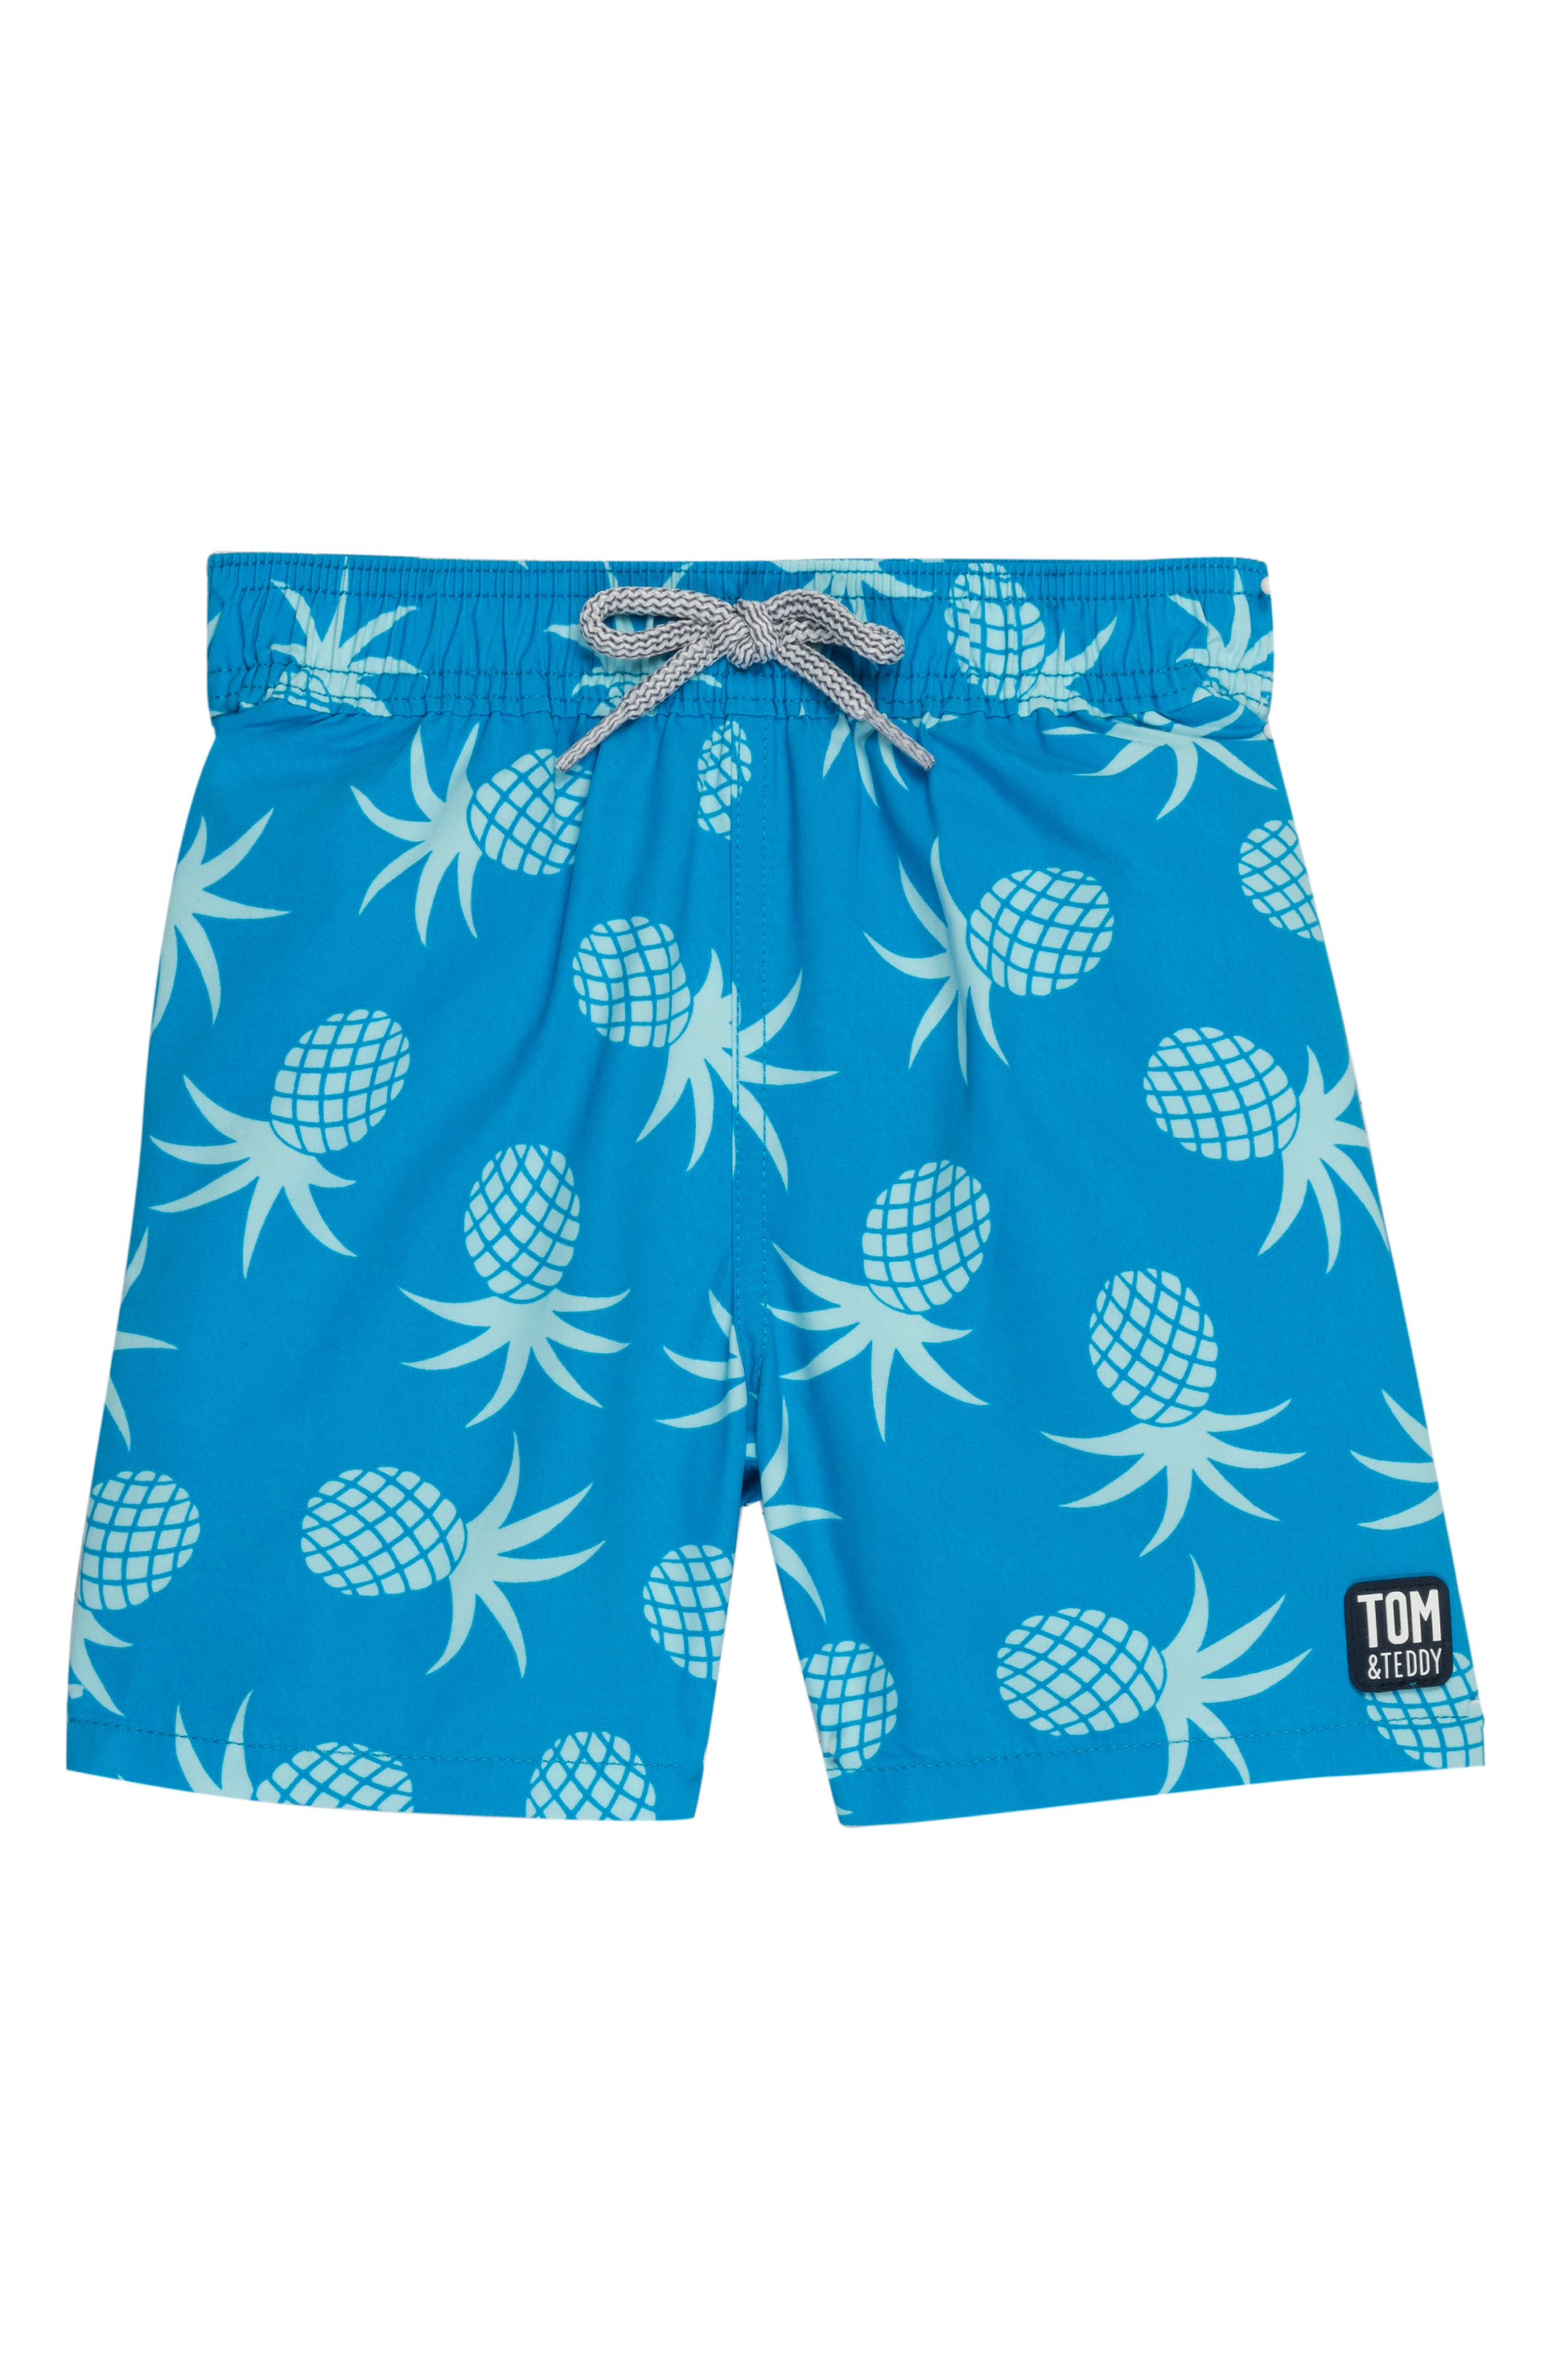 Toddler Boys Tom  Teddy Pineapple Swim Trunks Size 12Y  Blue